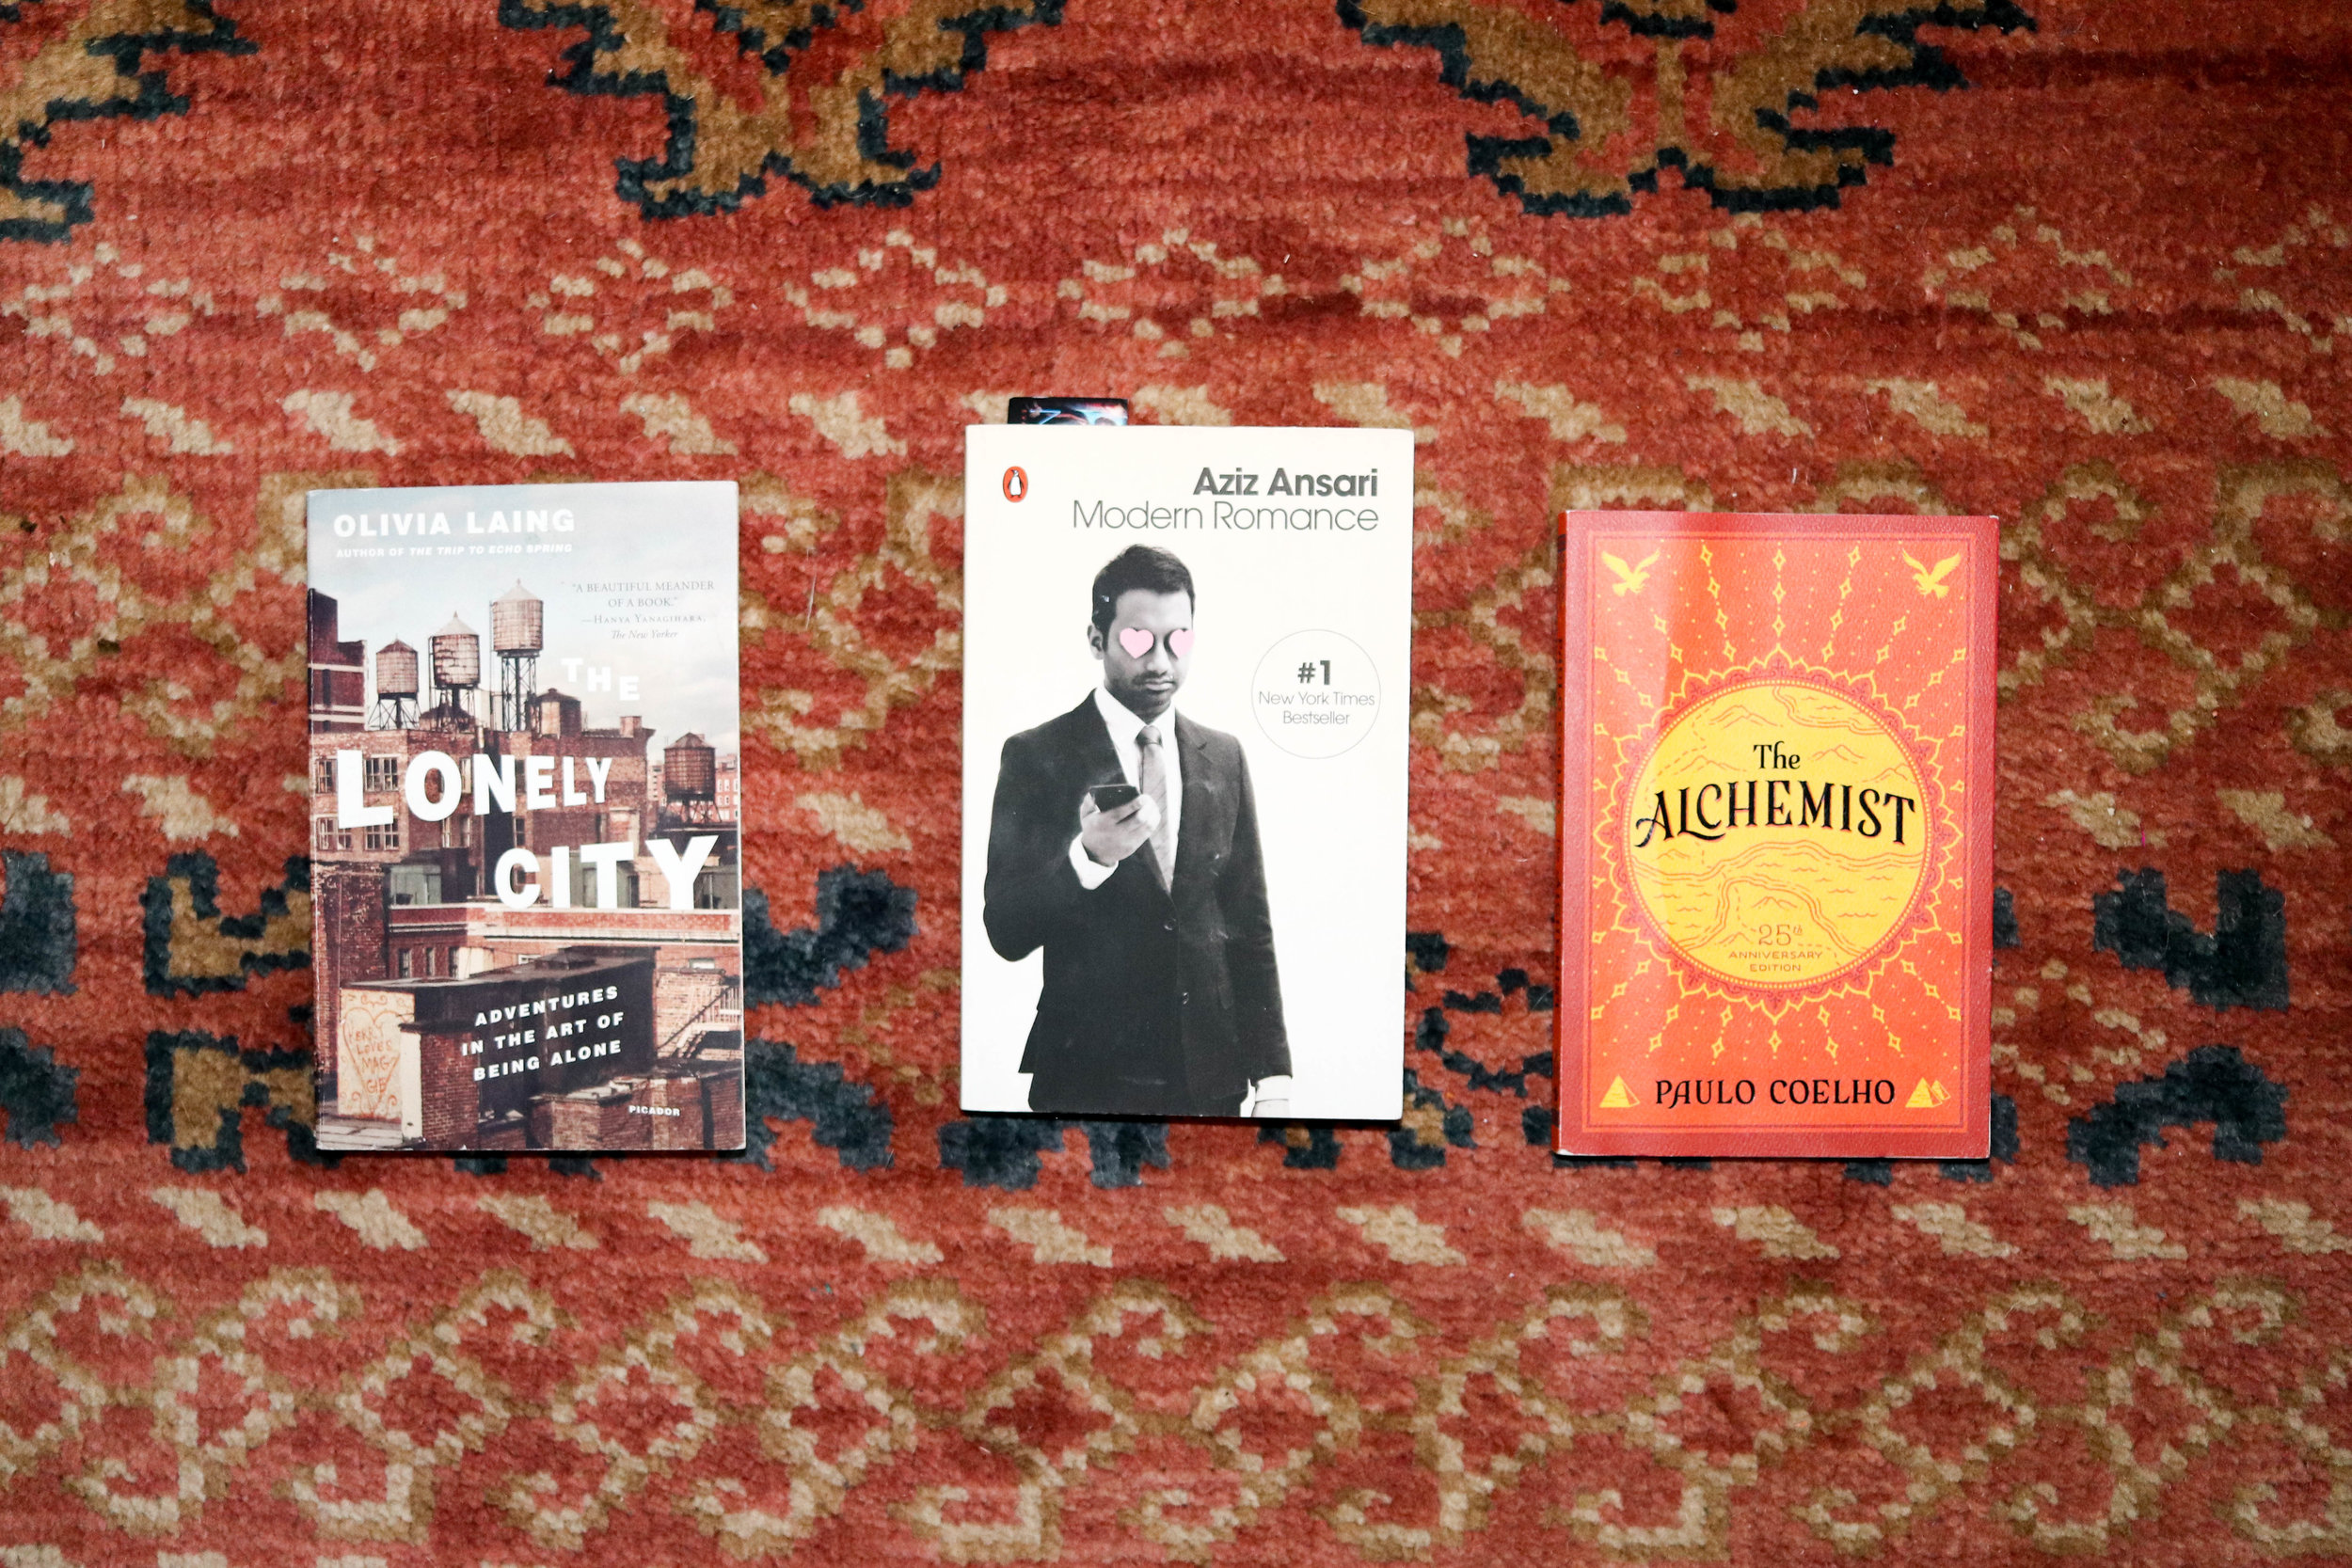 The Lonely City: Adventures in the Art of Being Alone   by Olivia Laing ;   Modern Romance   by Aziz Ansari ;   The Alchemist   by Paulo Coelho